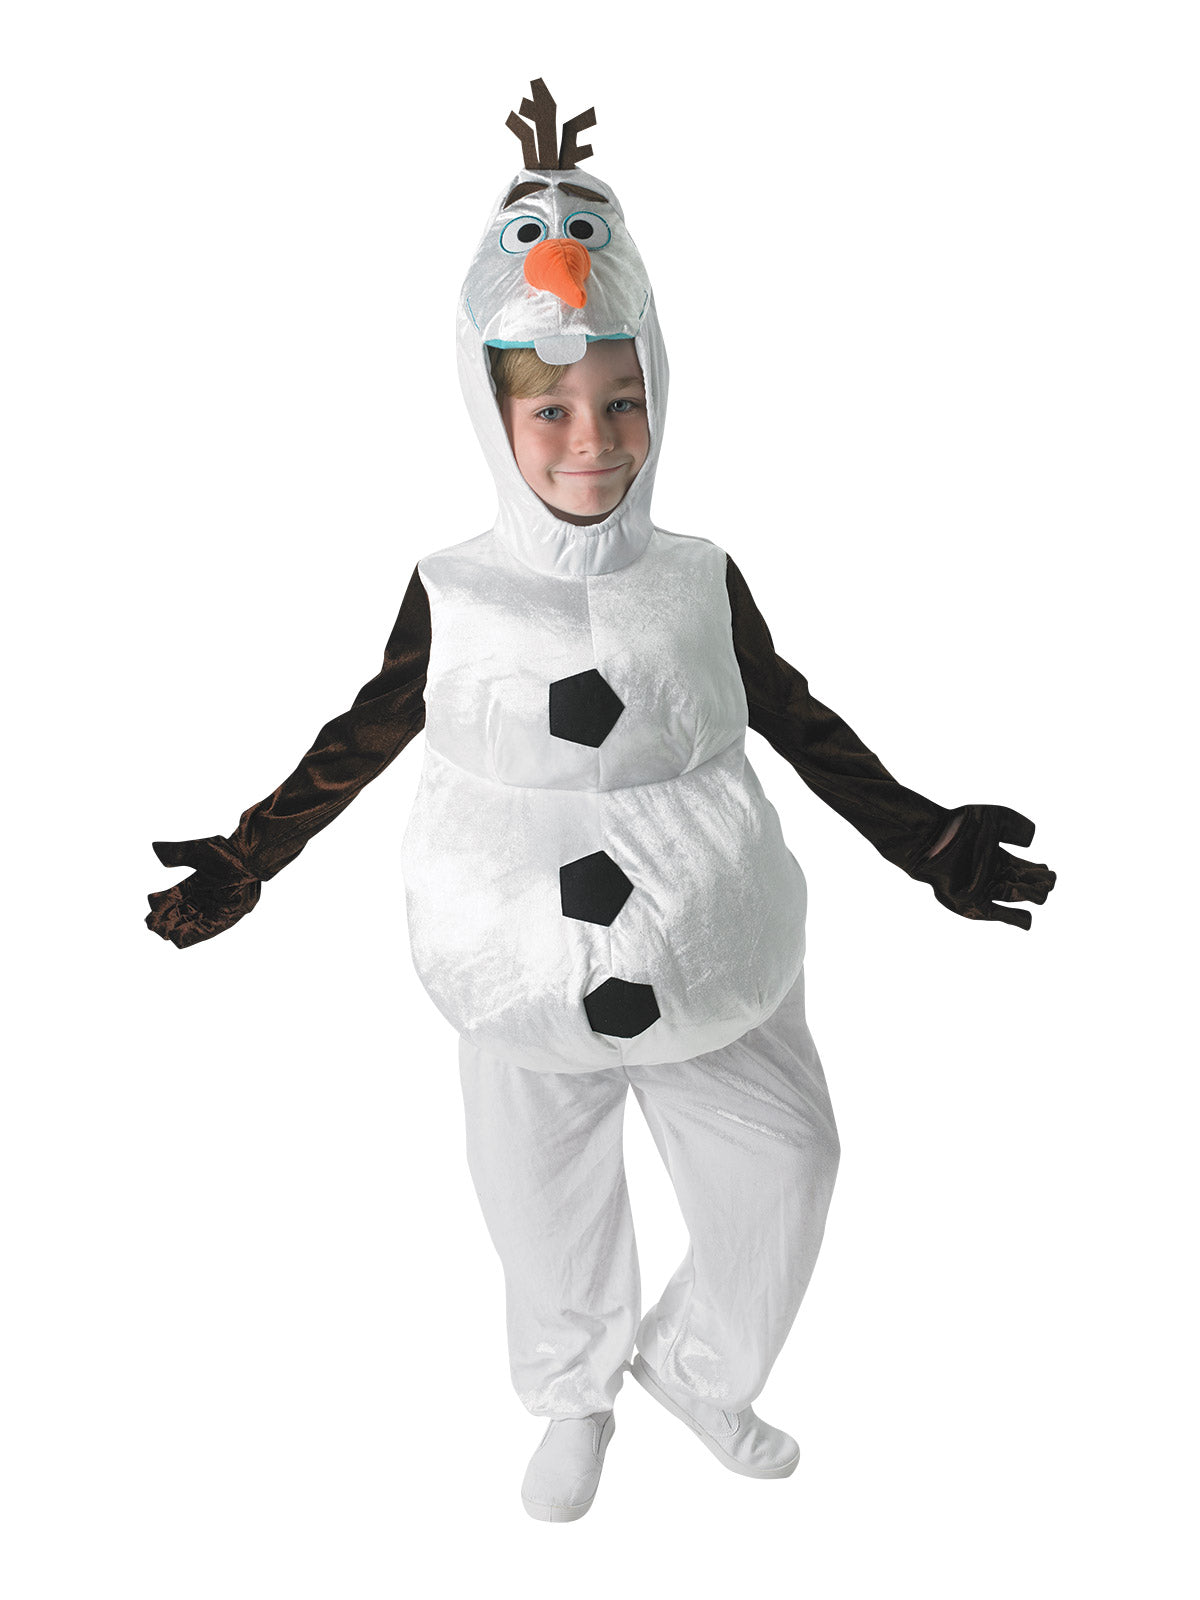 Olaf Frozen Deluxe Child Costume - Buy Online Only